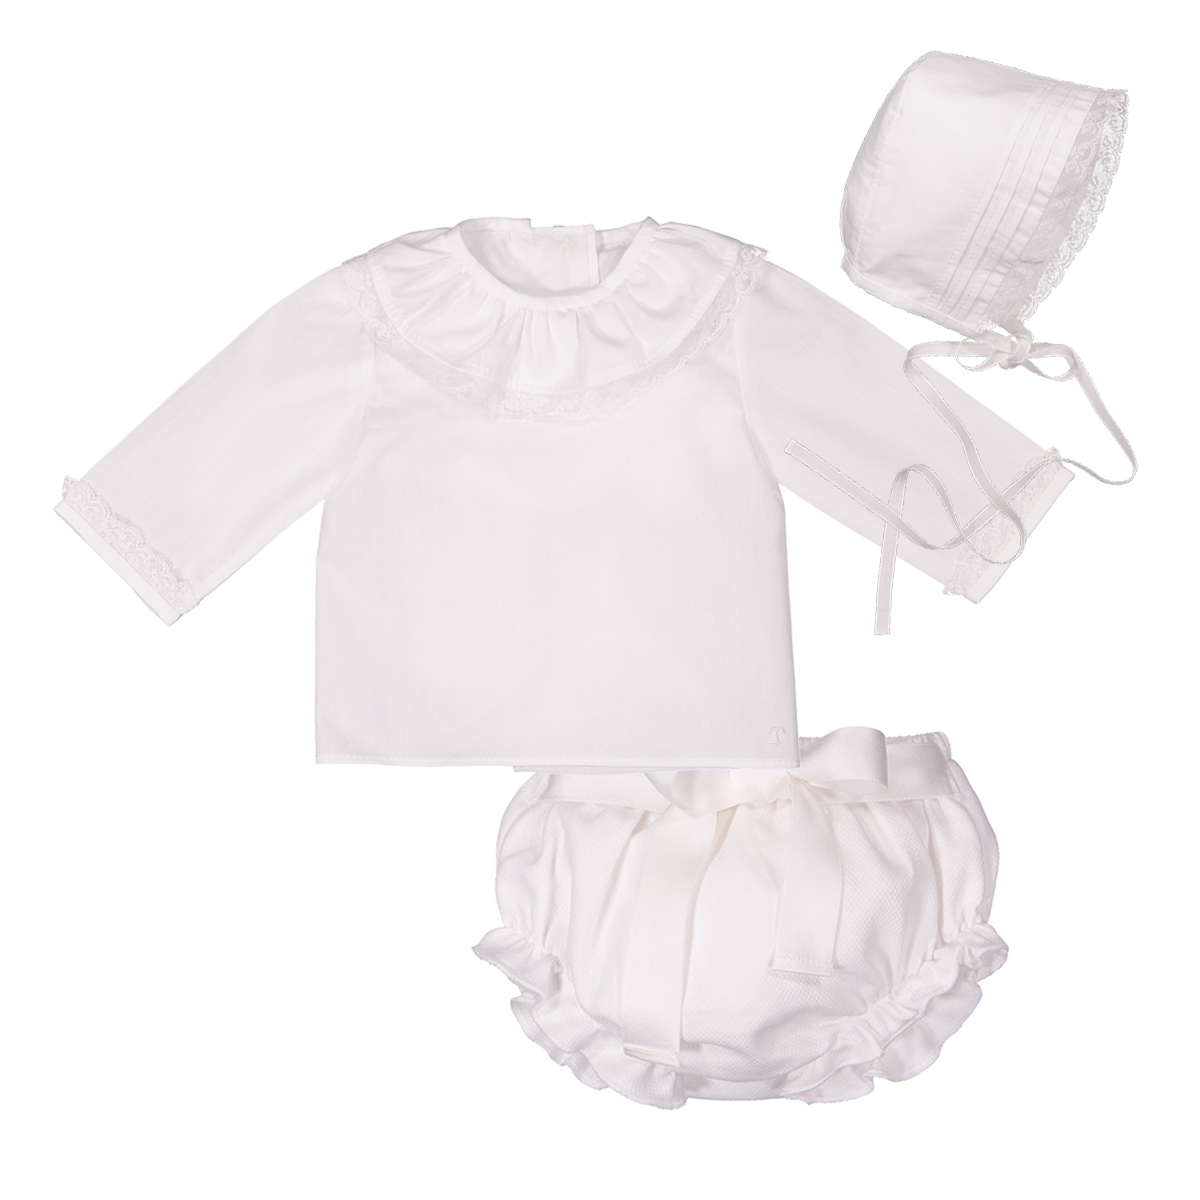 Tierno Baby Set with Bonnet, Bloomers, and Blouse in purity white